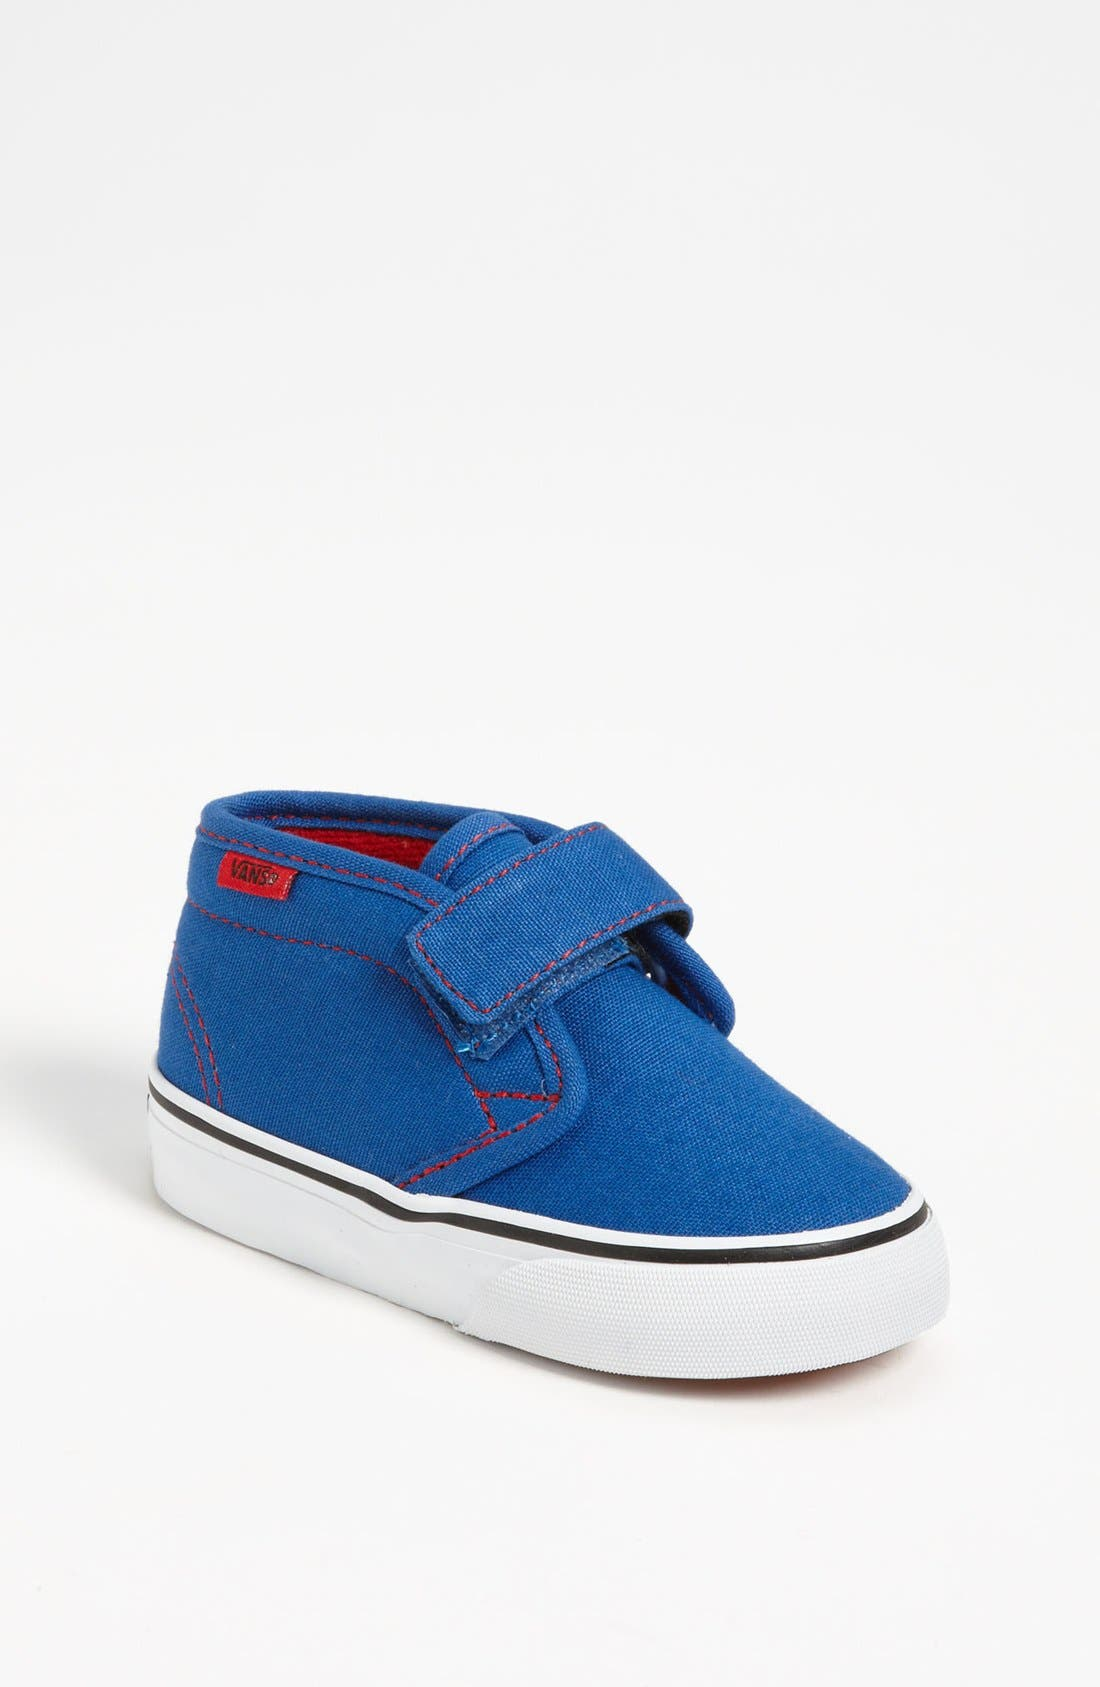 Alternate Image 1 Selected - Vans Chukka Boot (Baby, Walker & Toddler)